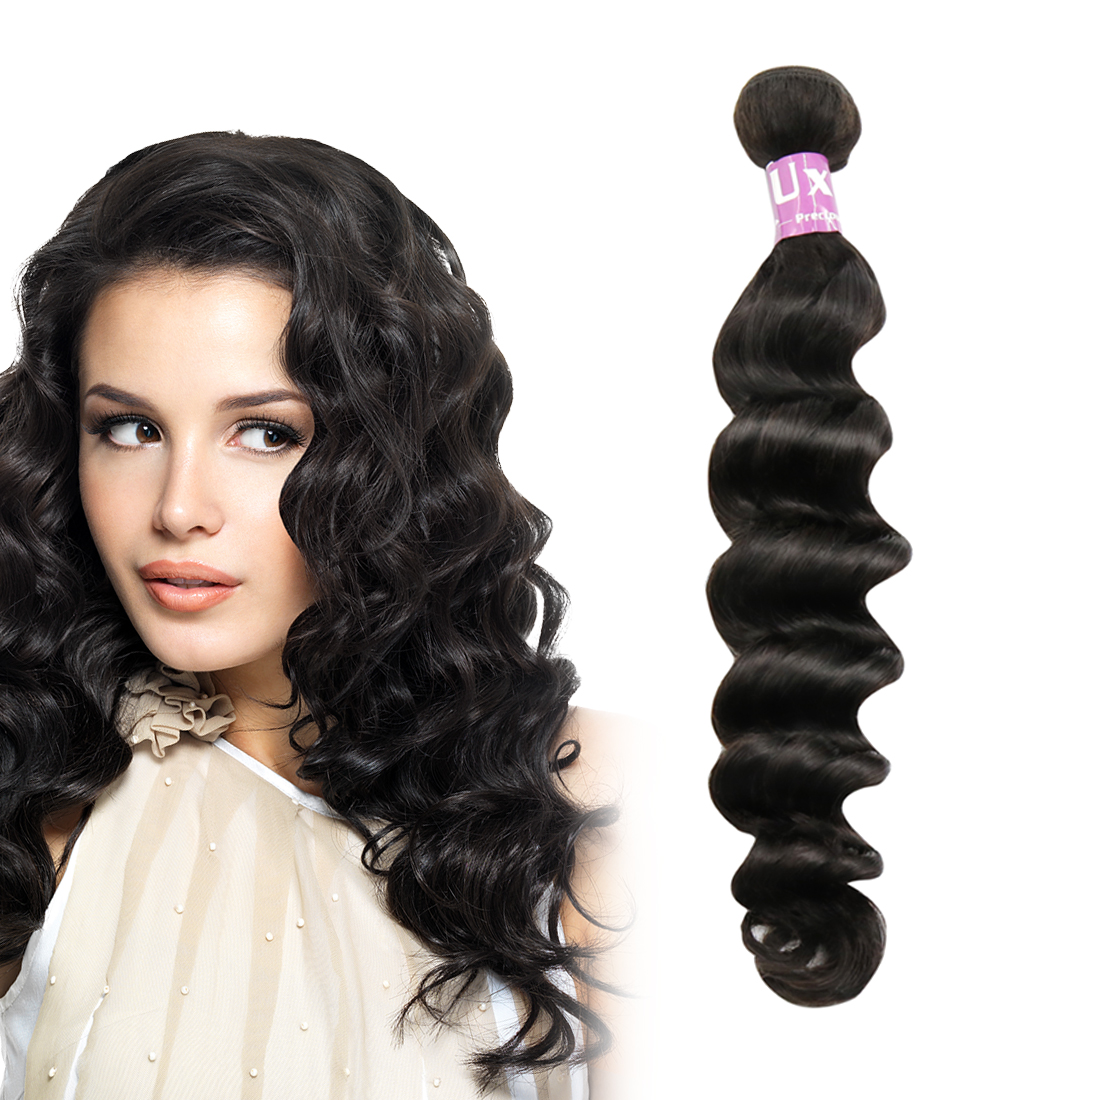 "UXCELL Peruvian Virgin Human Hair Weave Extensions Loose Curly 8A 22"" 1 Bundle"